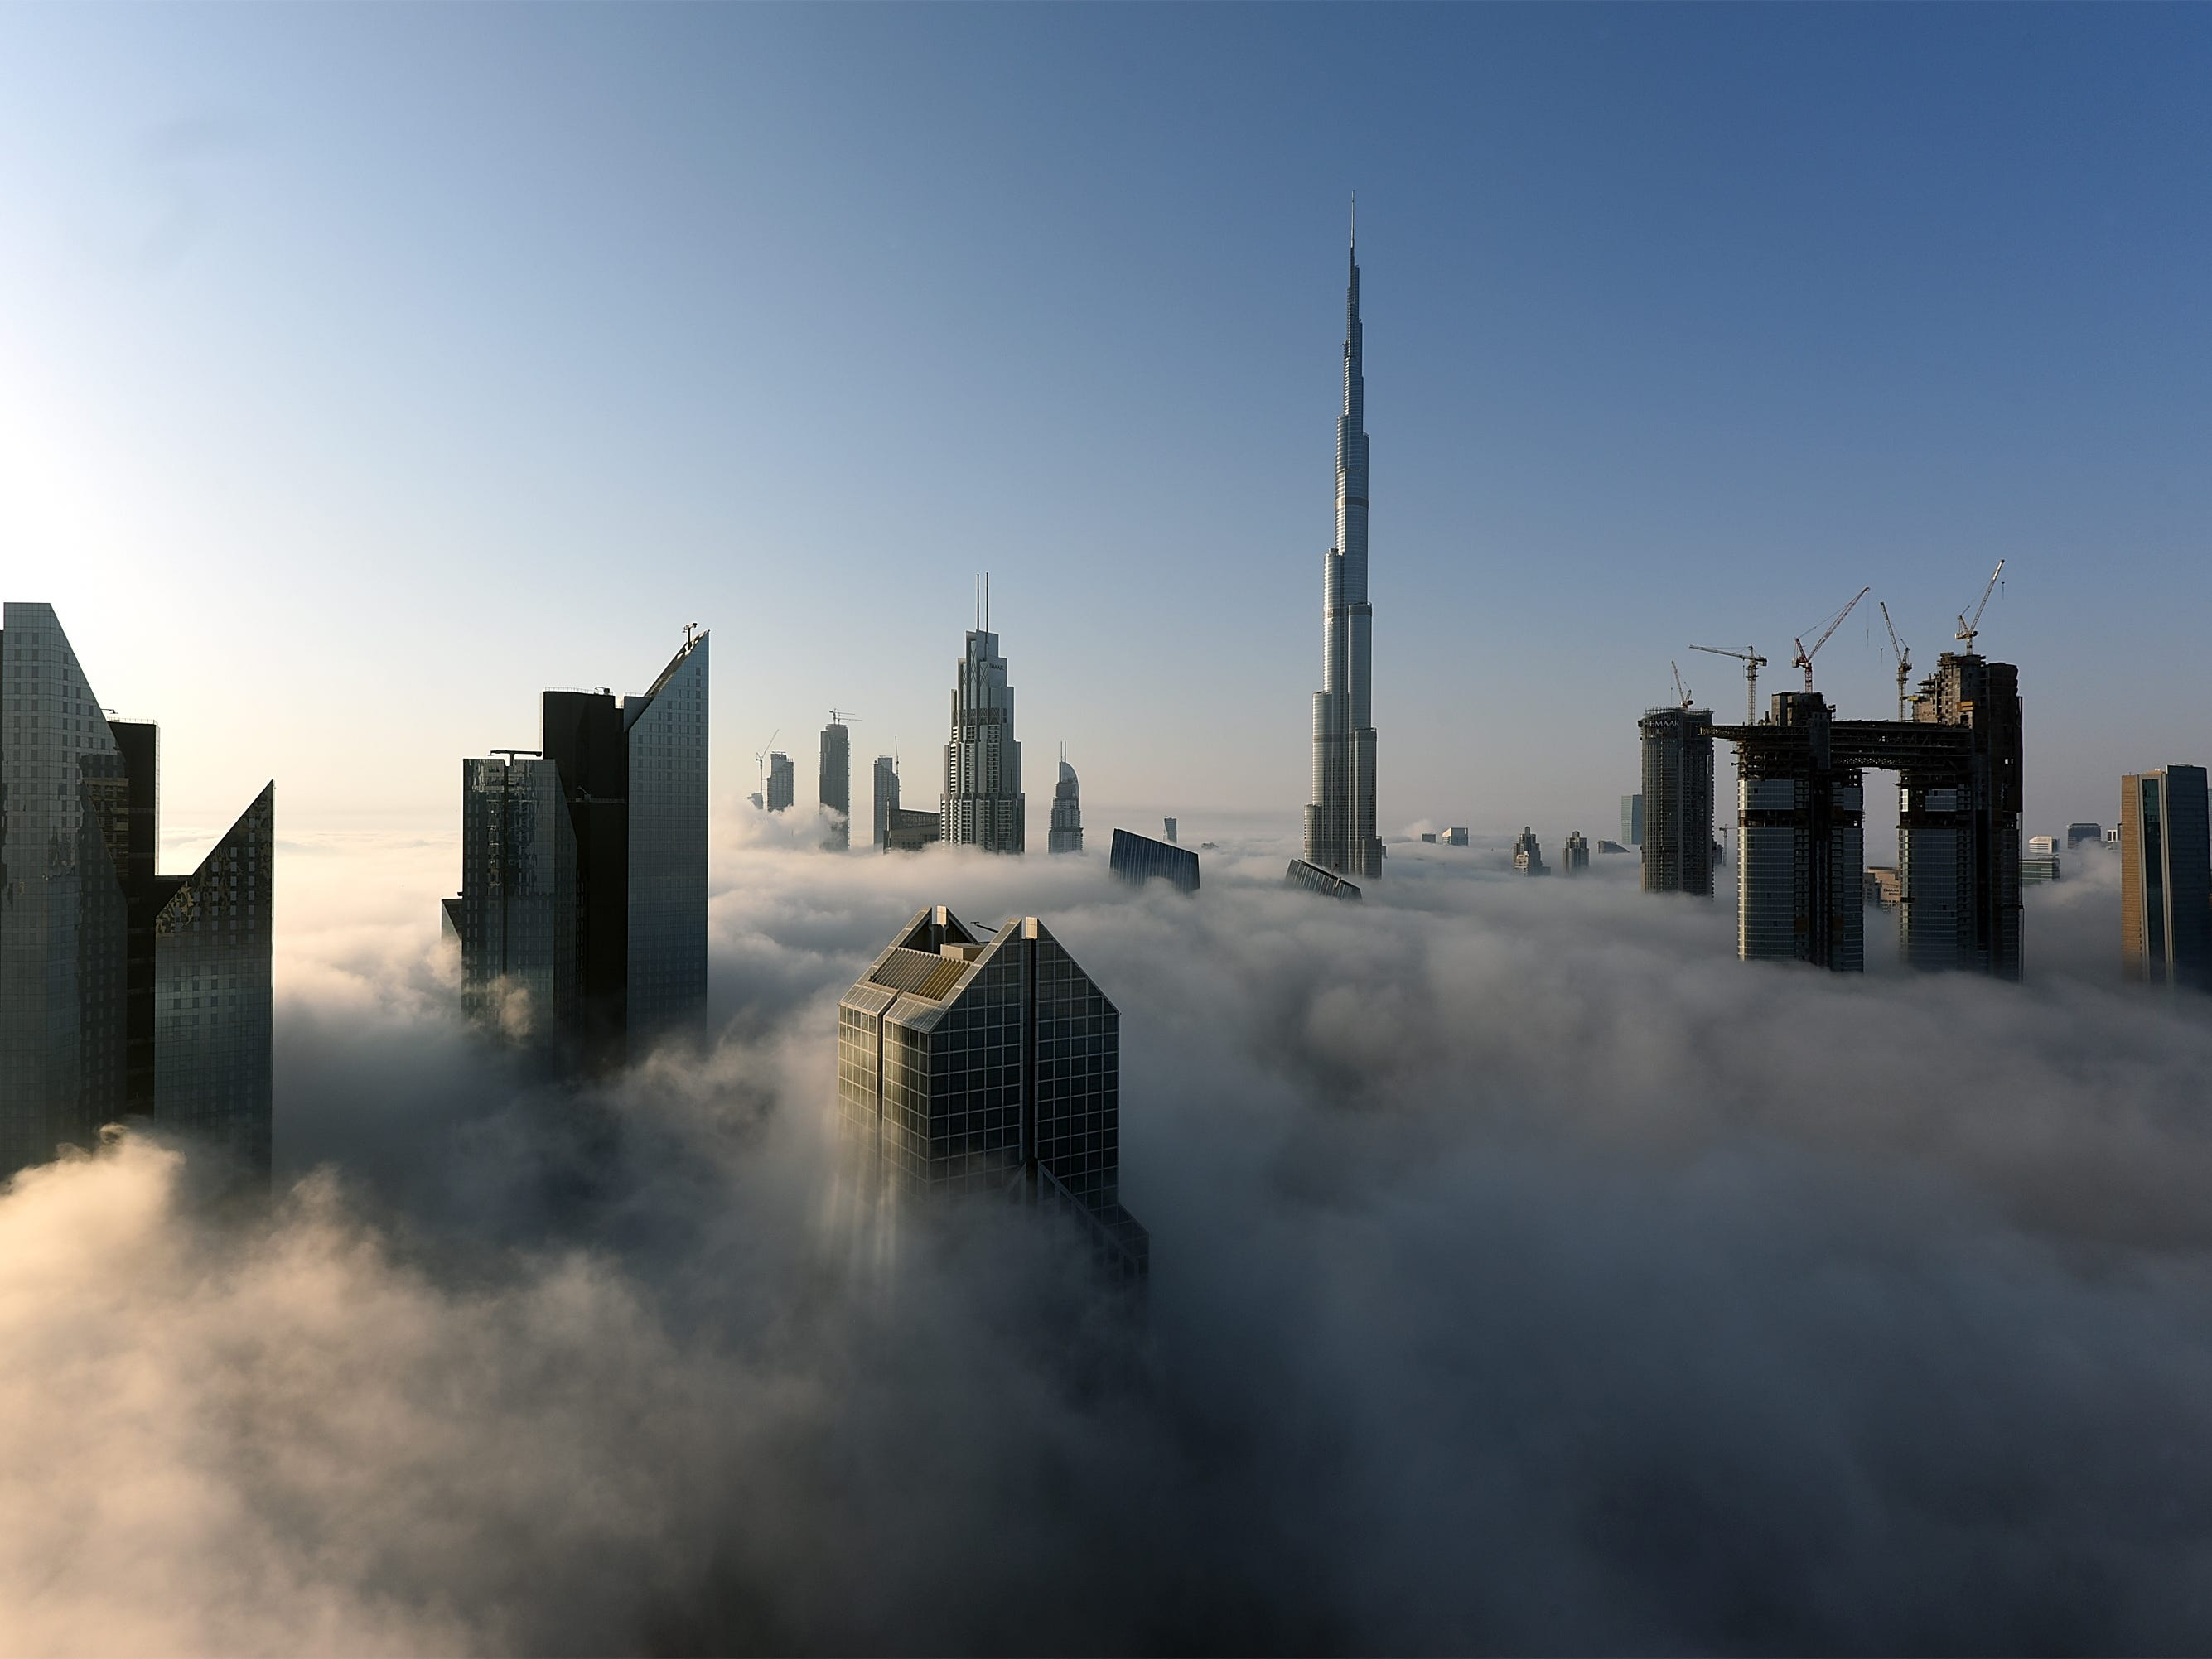 DUBAI, UNITED ARAB EMIRATES - SEPTEMBER 27:  General view of Burj Khalifa during a heavy fog on September 27, 2017 in Dubai, United Arab Emirates.  (Photo by Tom Dulat/Getty Images) ORG XMIT: 690757445 ORIG FILE ID: 854626142